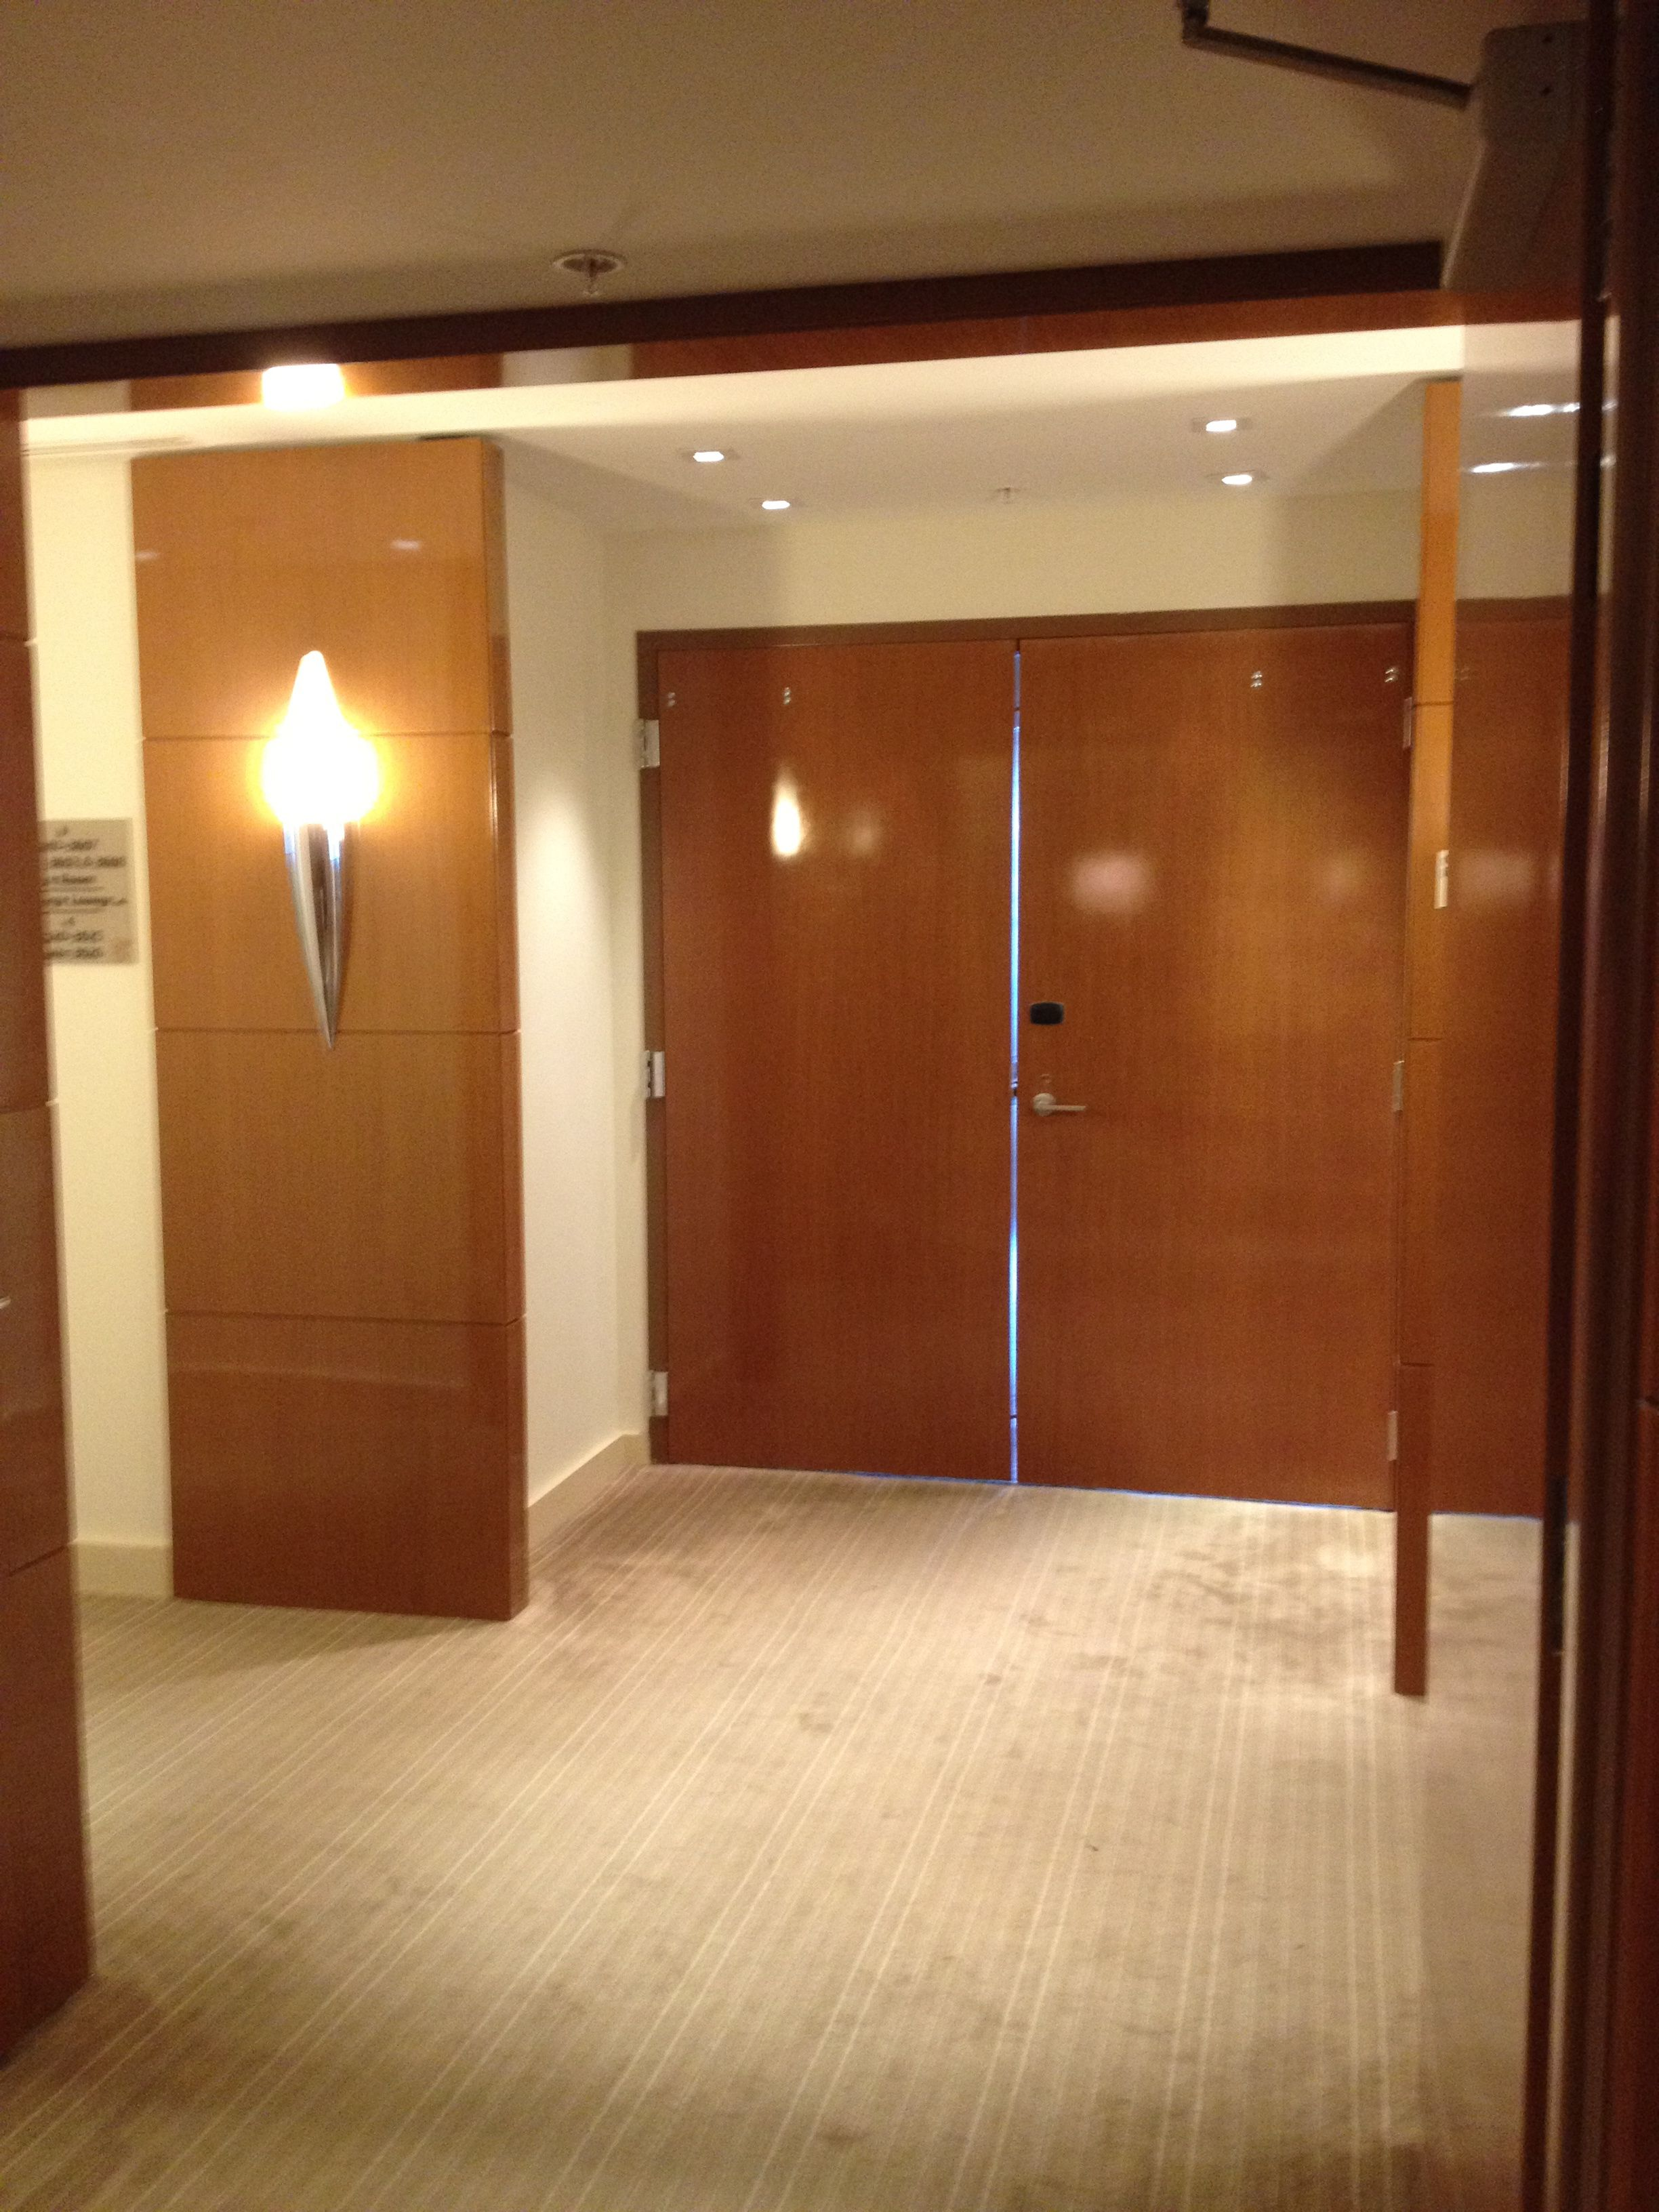 Ampco Products Laminate Doors & Ampco Products Laminate Doors   Ampco Product Doors   Pinterest ...